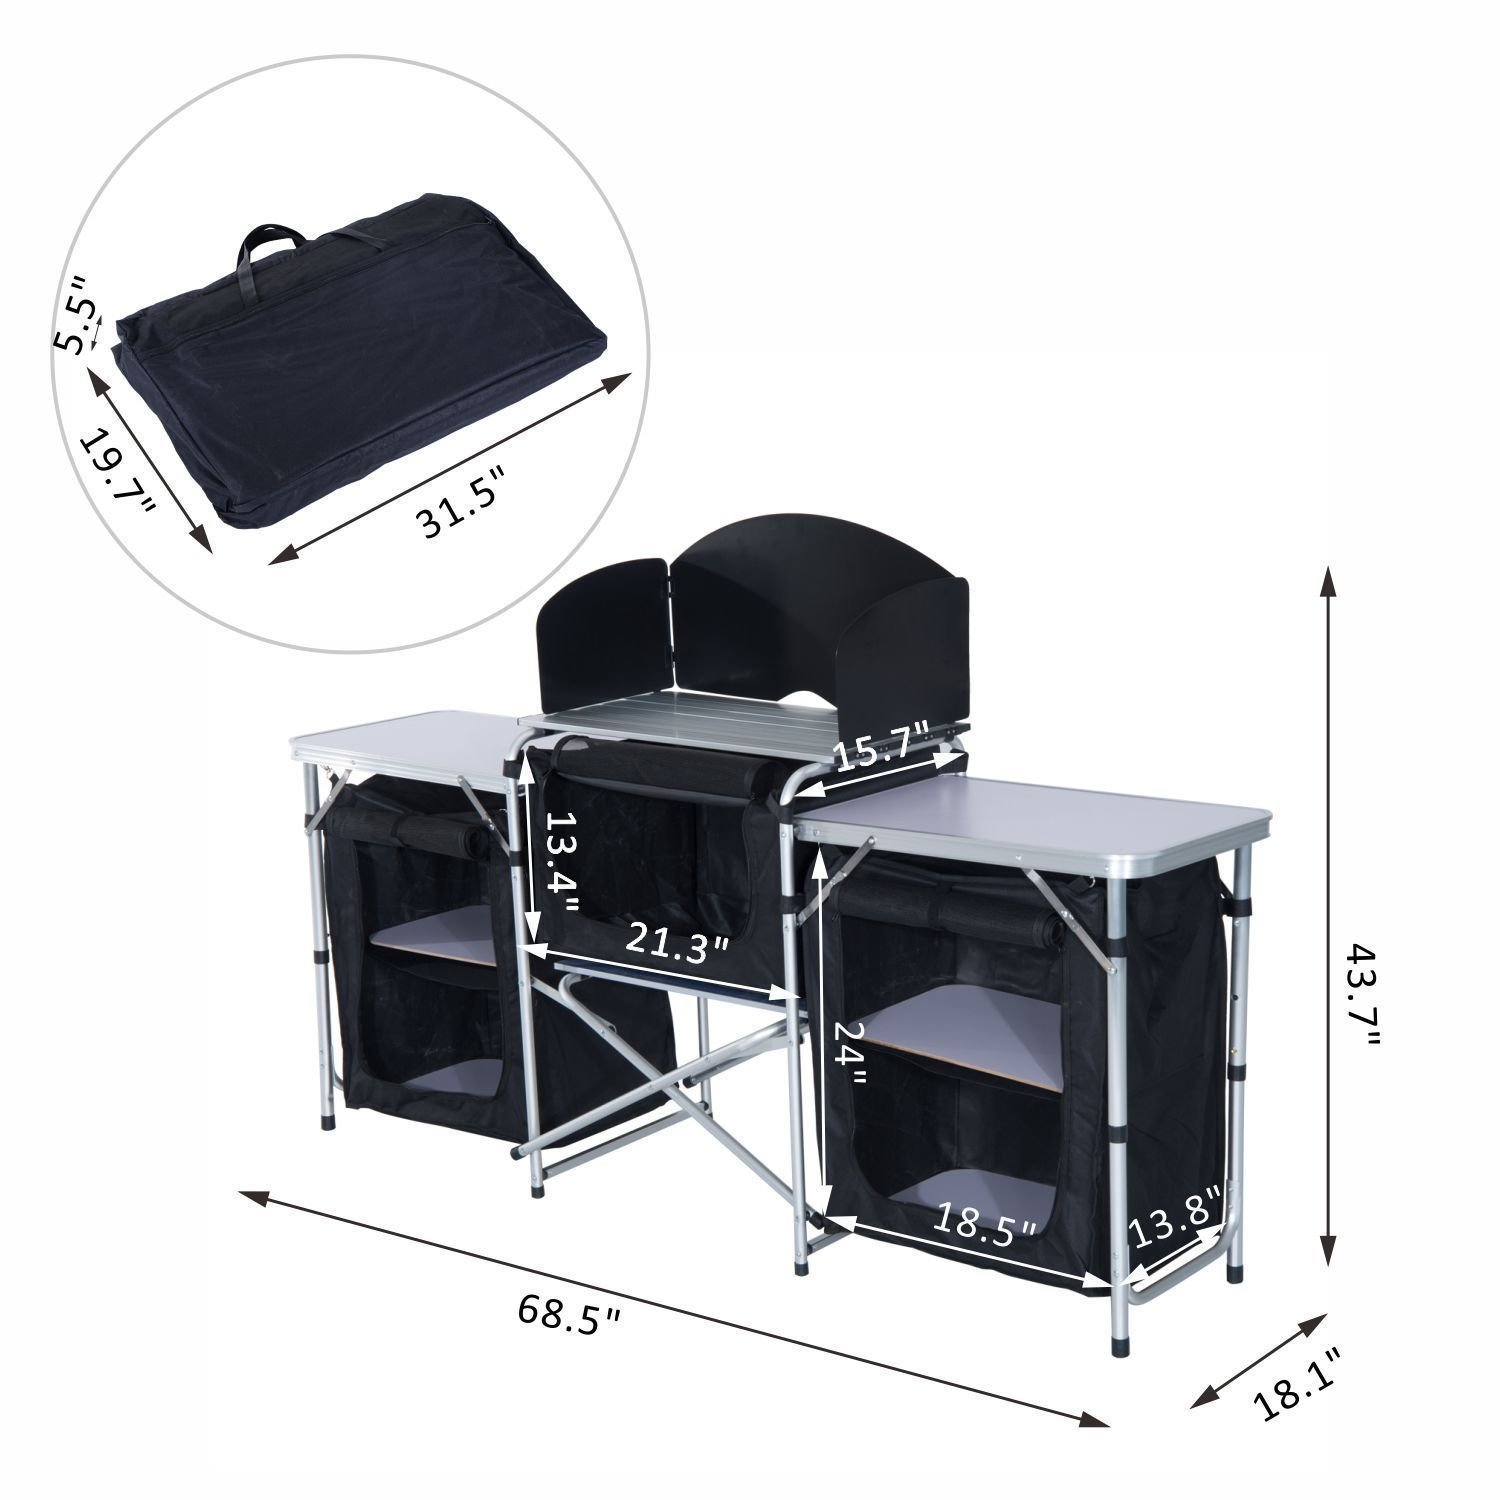 ABC.store Camping Kitchen Picnic Cabinet Table Portable Folding Cooking Storage Rack